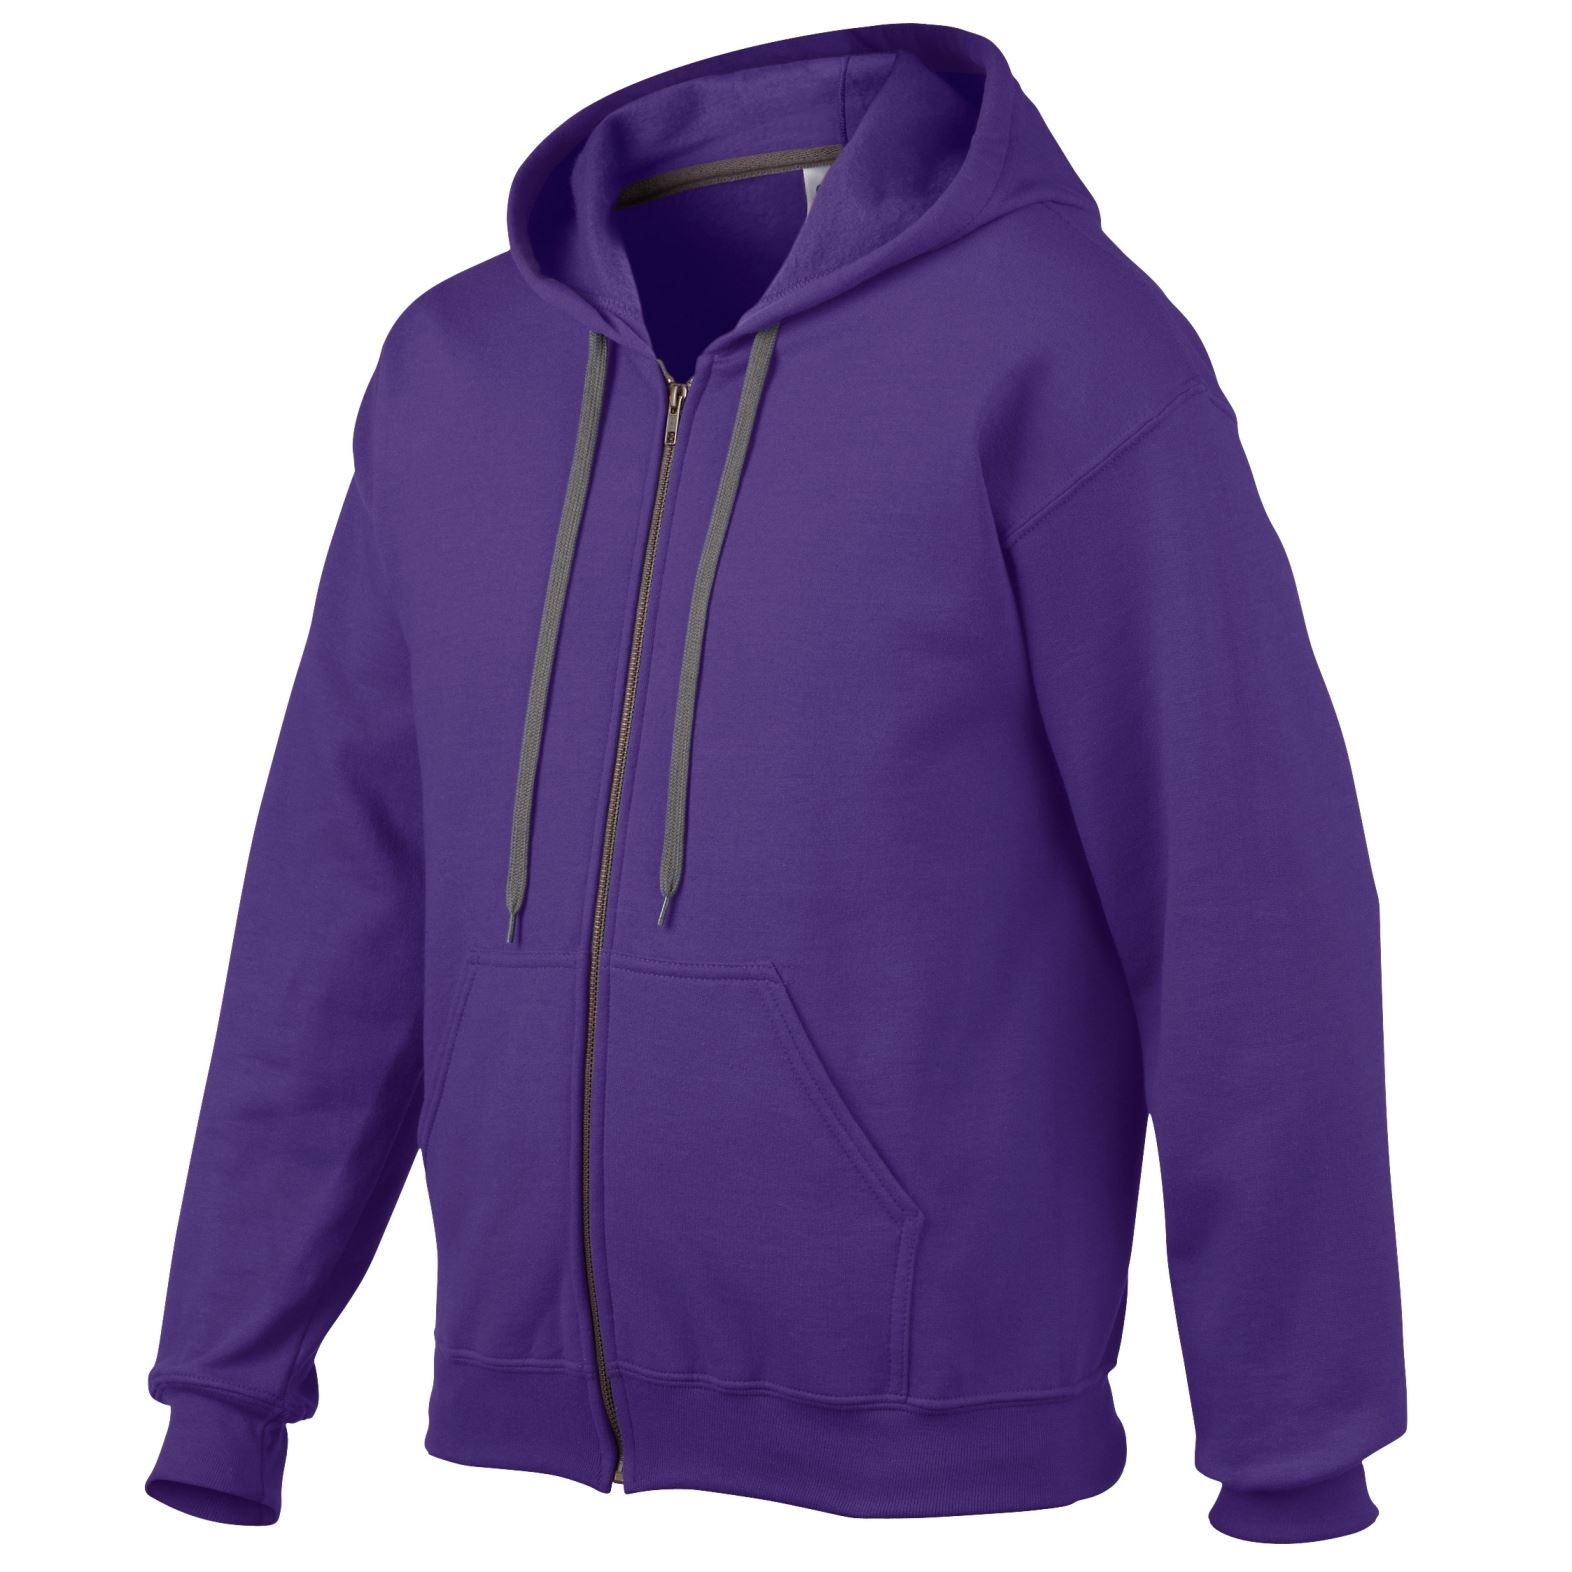 Hoodies with buttons